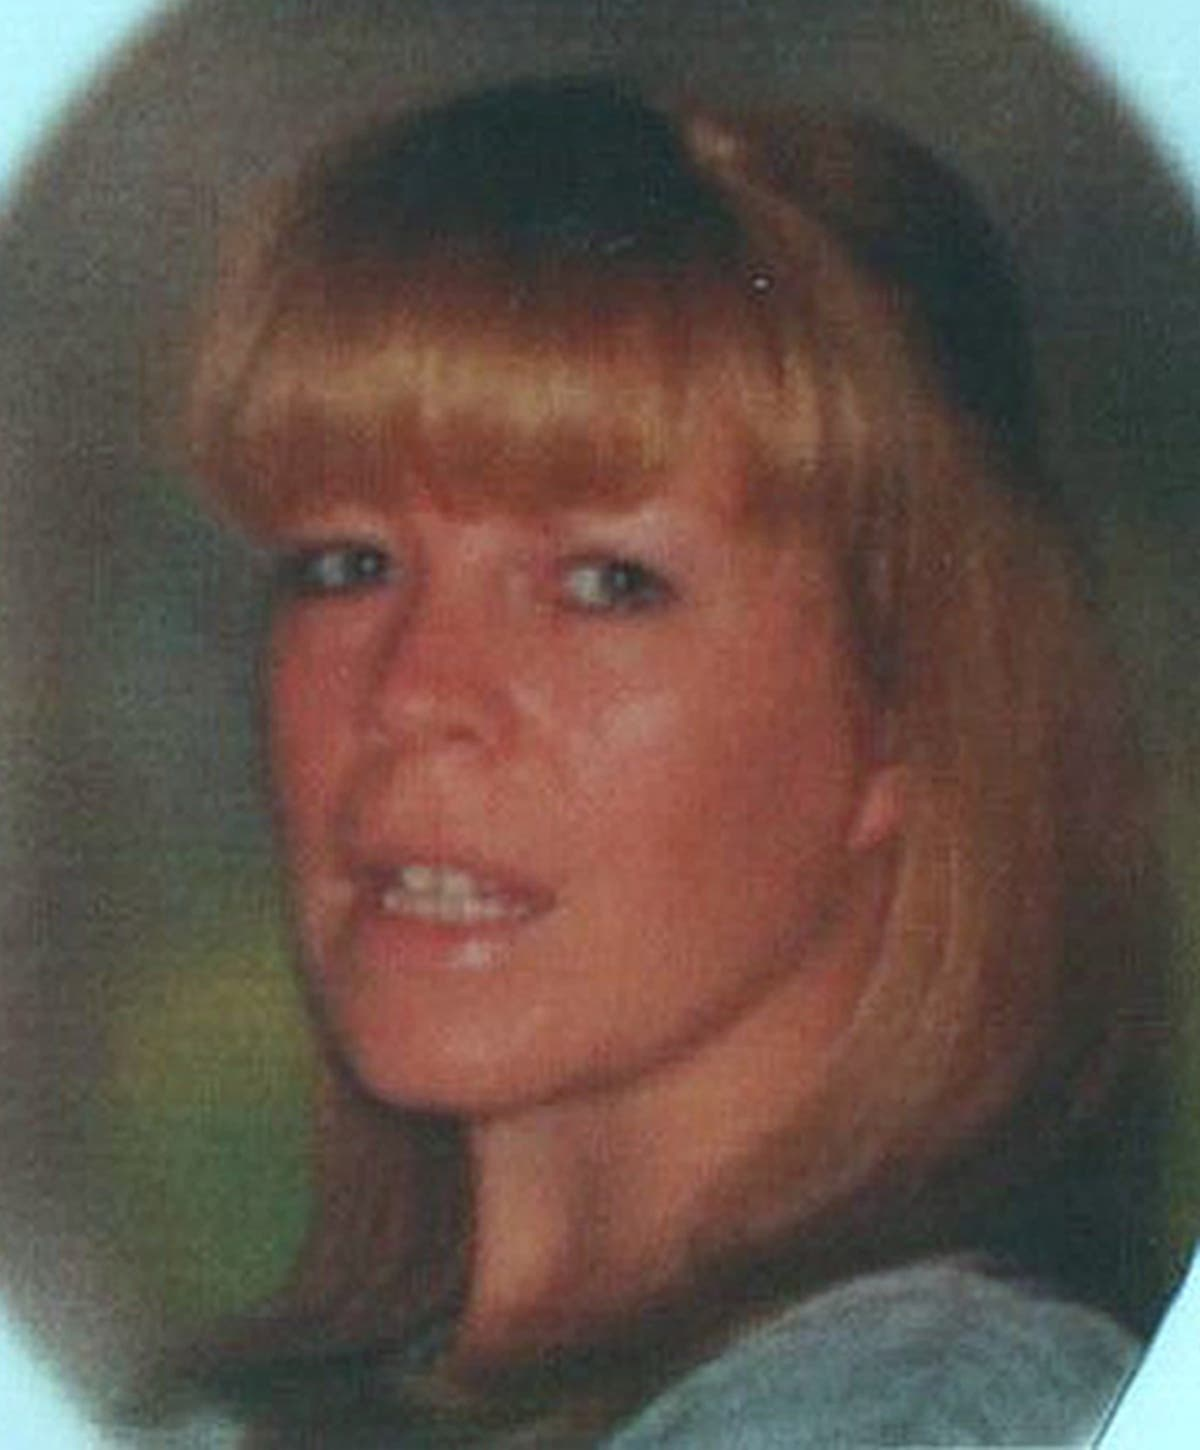 Family of domestic abuse victim criticises failings after police apology